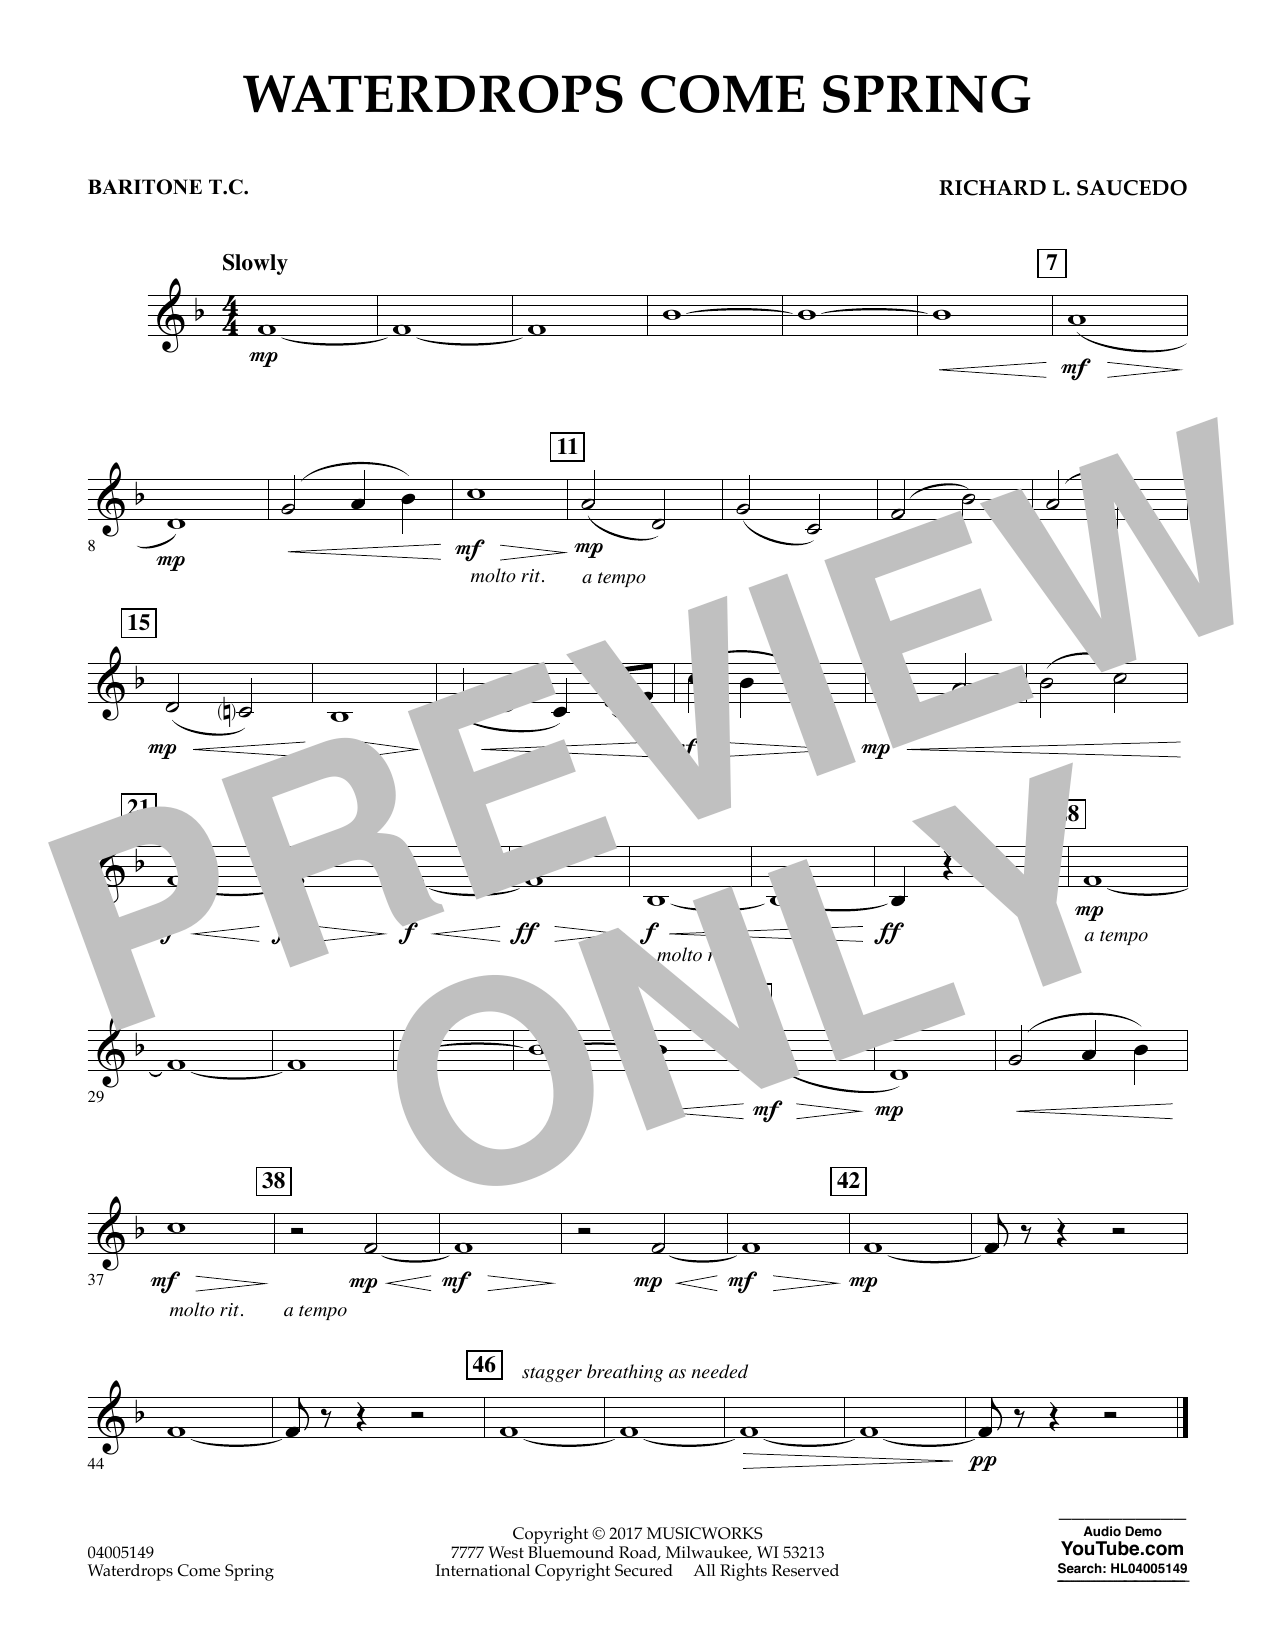 Waterdrops Come Spring - Baritone T.C. Sheet Music